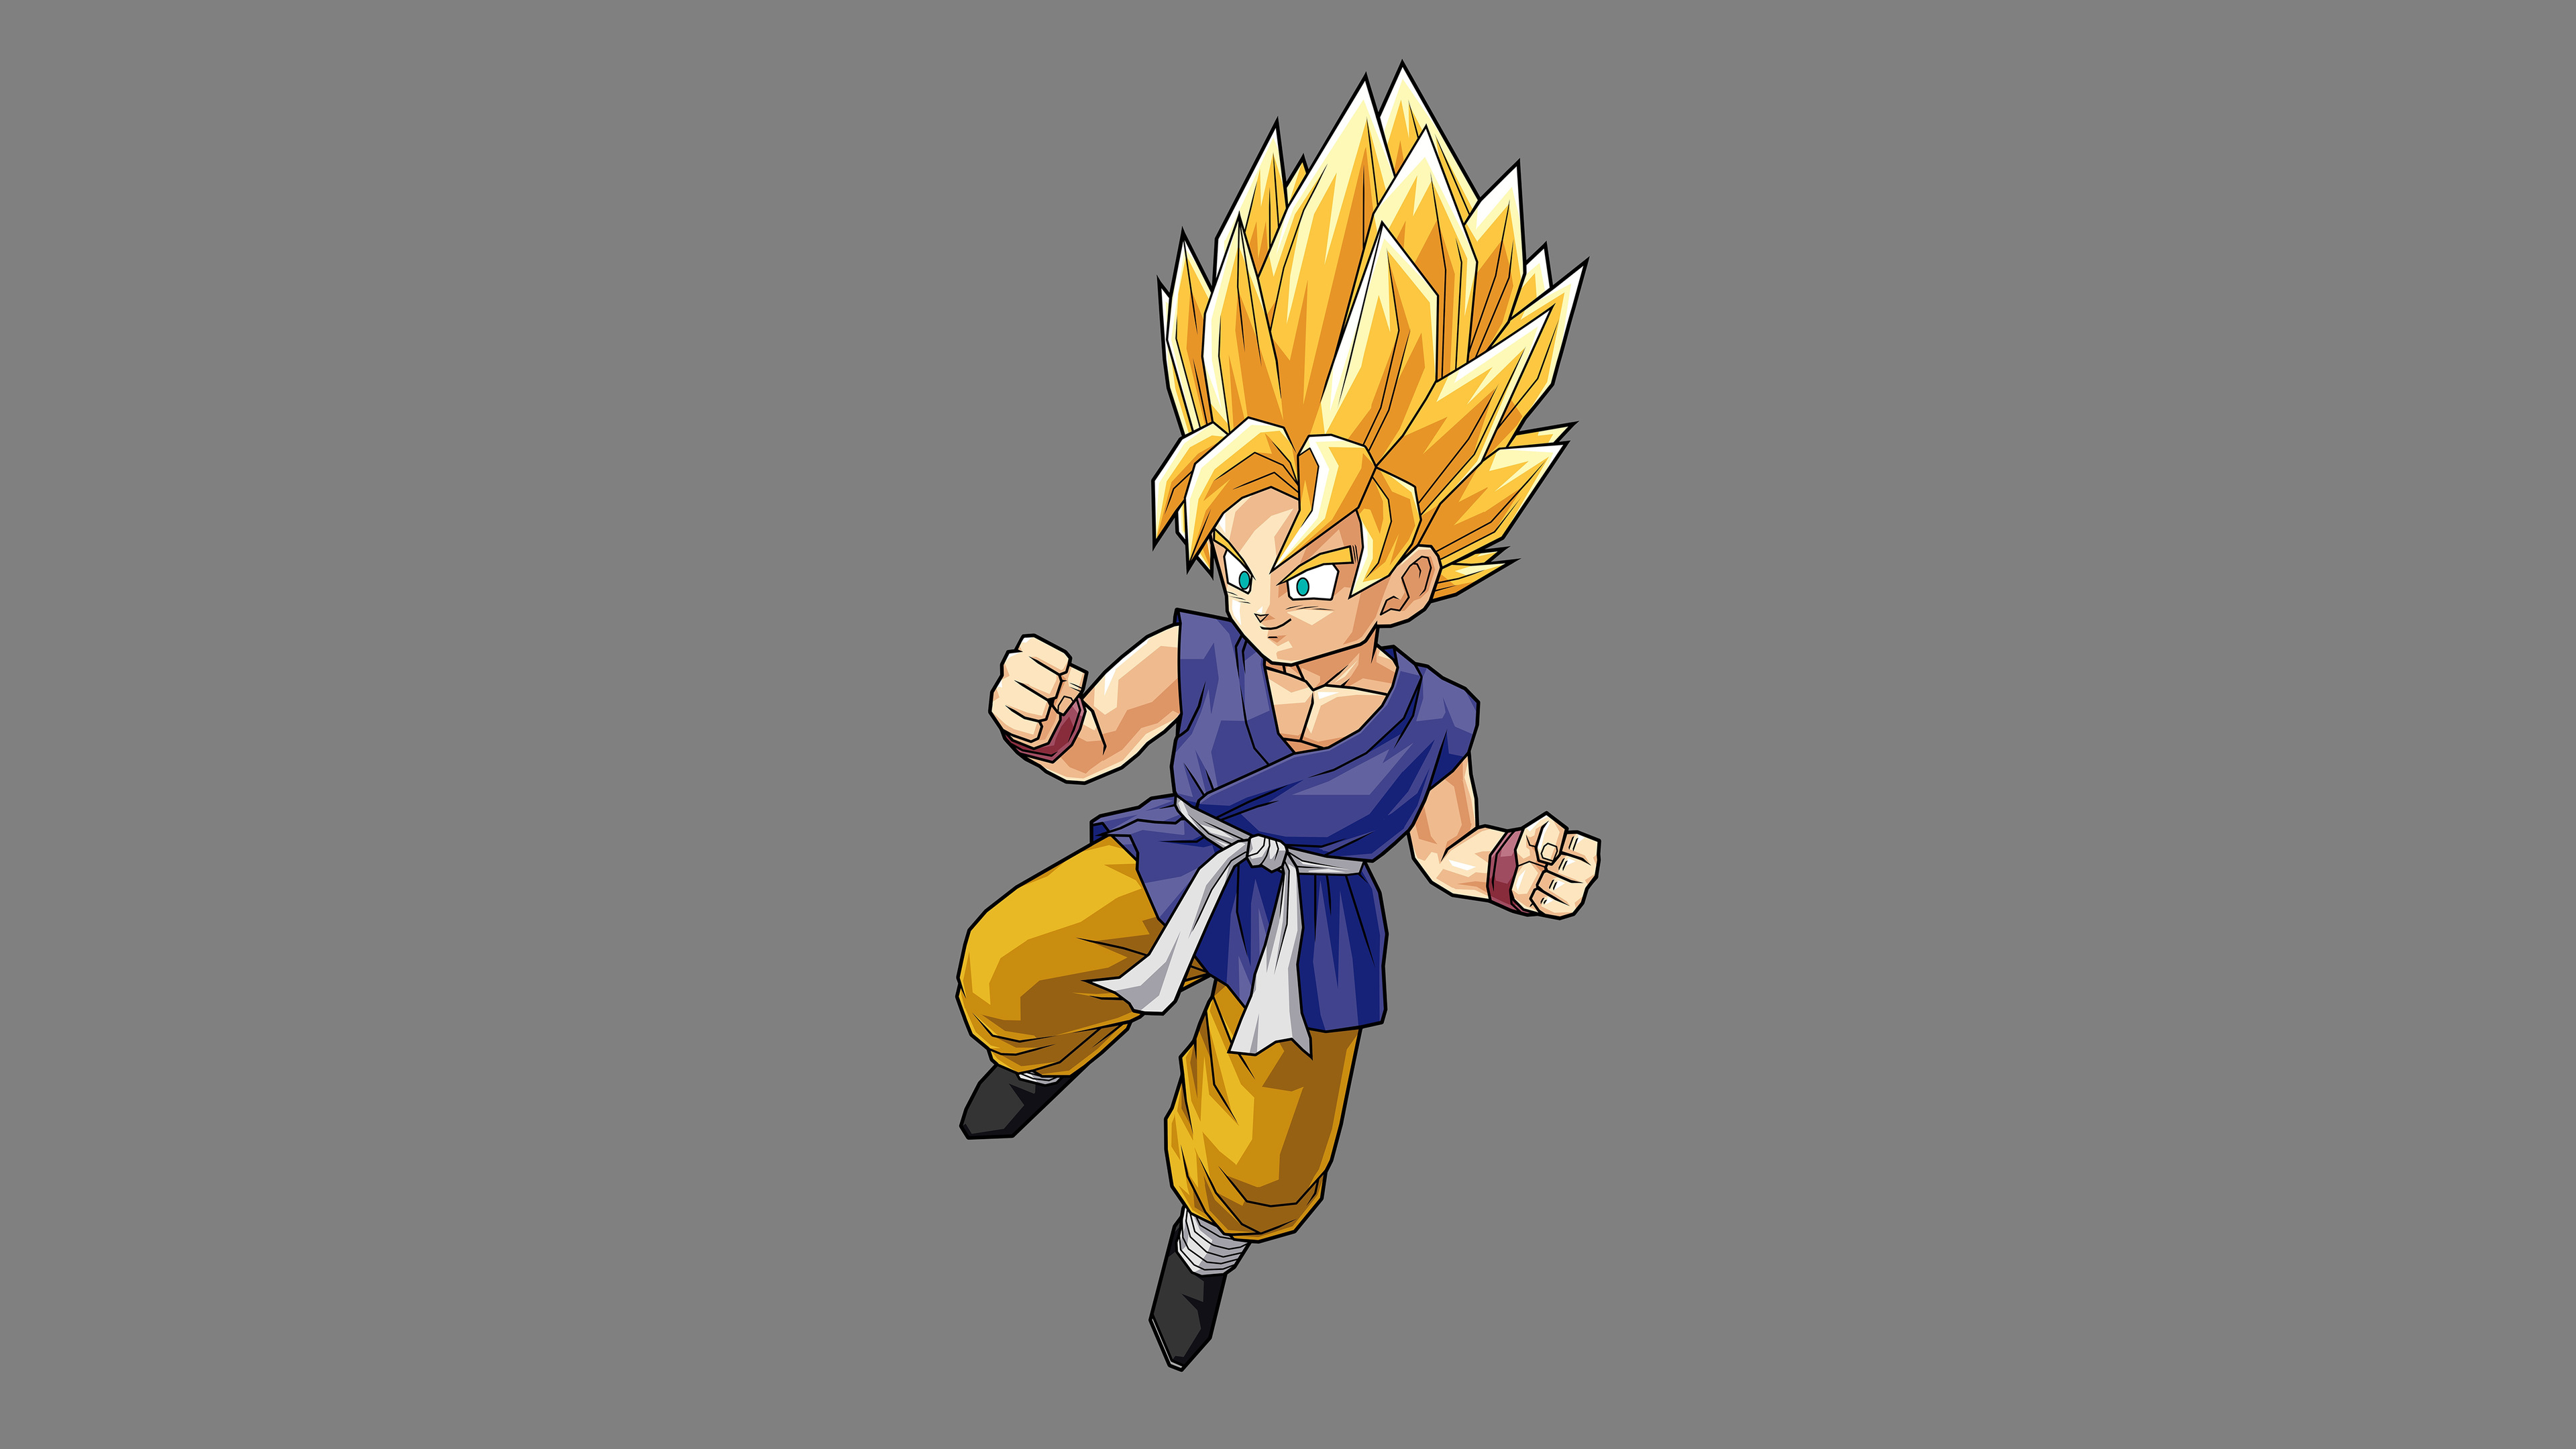 son goku dragon ball 4k 1541974585 - Son Goku Dragon Ball 4k - hd-wallpapers, goku wallpapers, dragon ball wallpapers, anime wallpapers, 4k-wallpapers